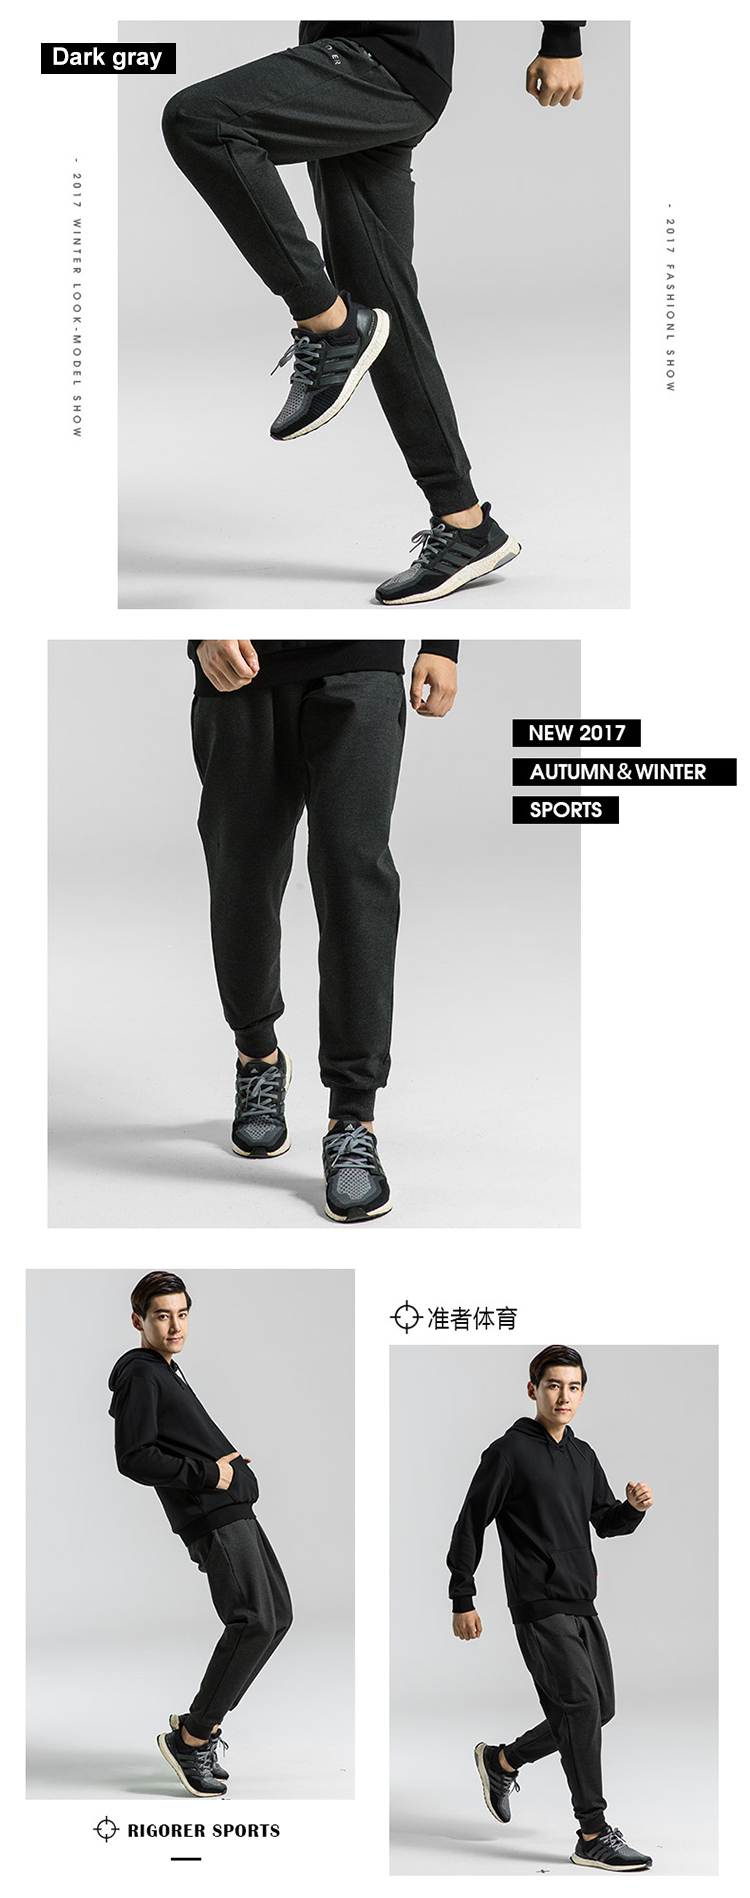 Wholesale Mens Blank Jogger Pants Fashionable Style Sports Pants With Zipper Pockets Casual Pants for Outdoor Exercise